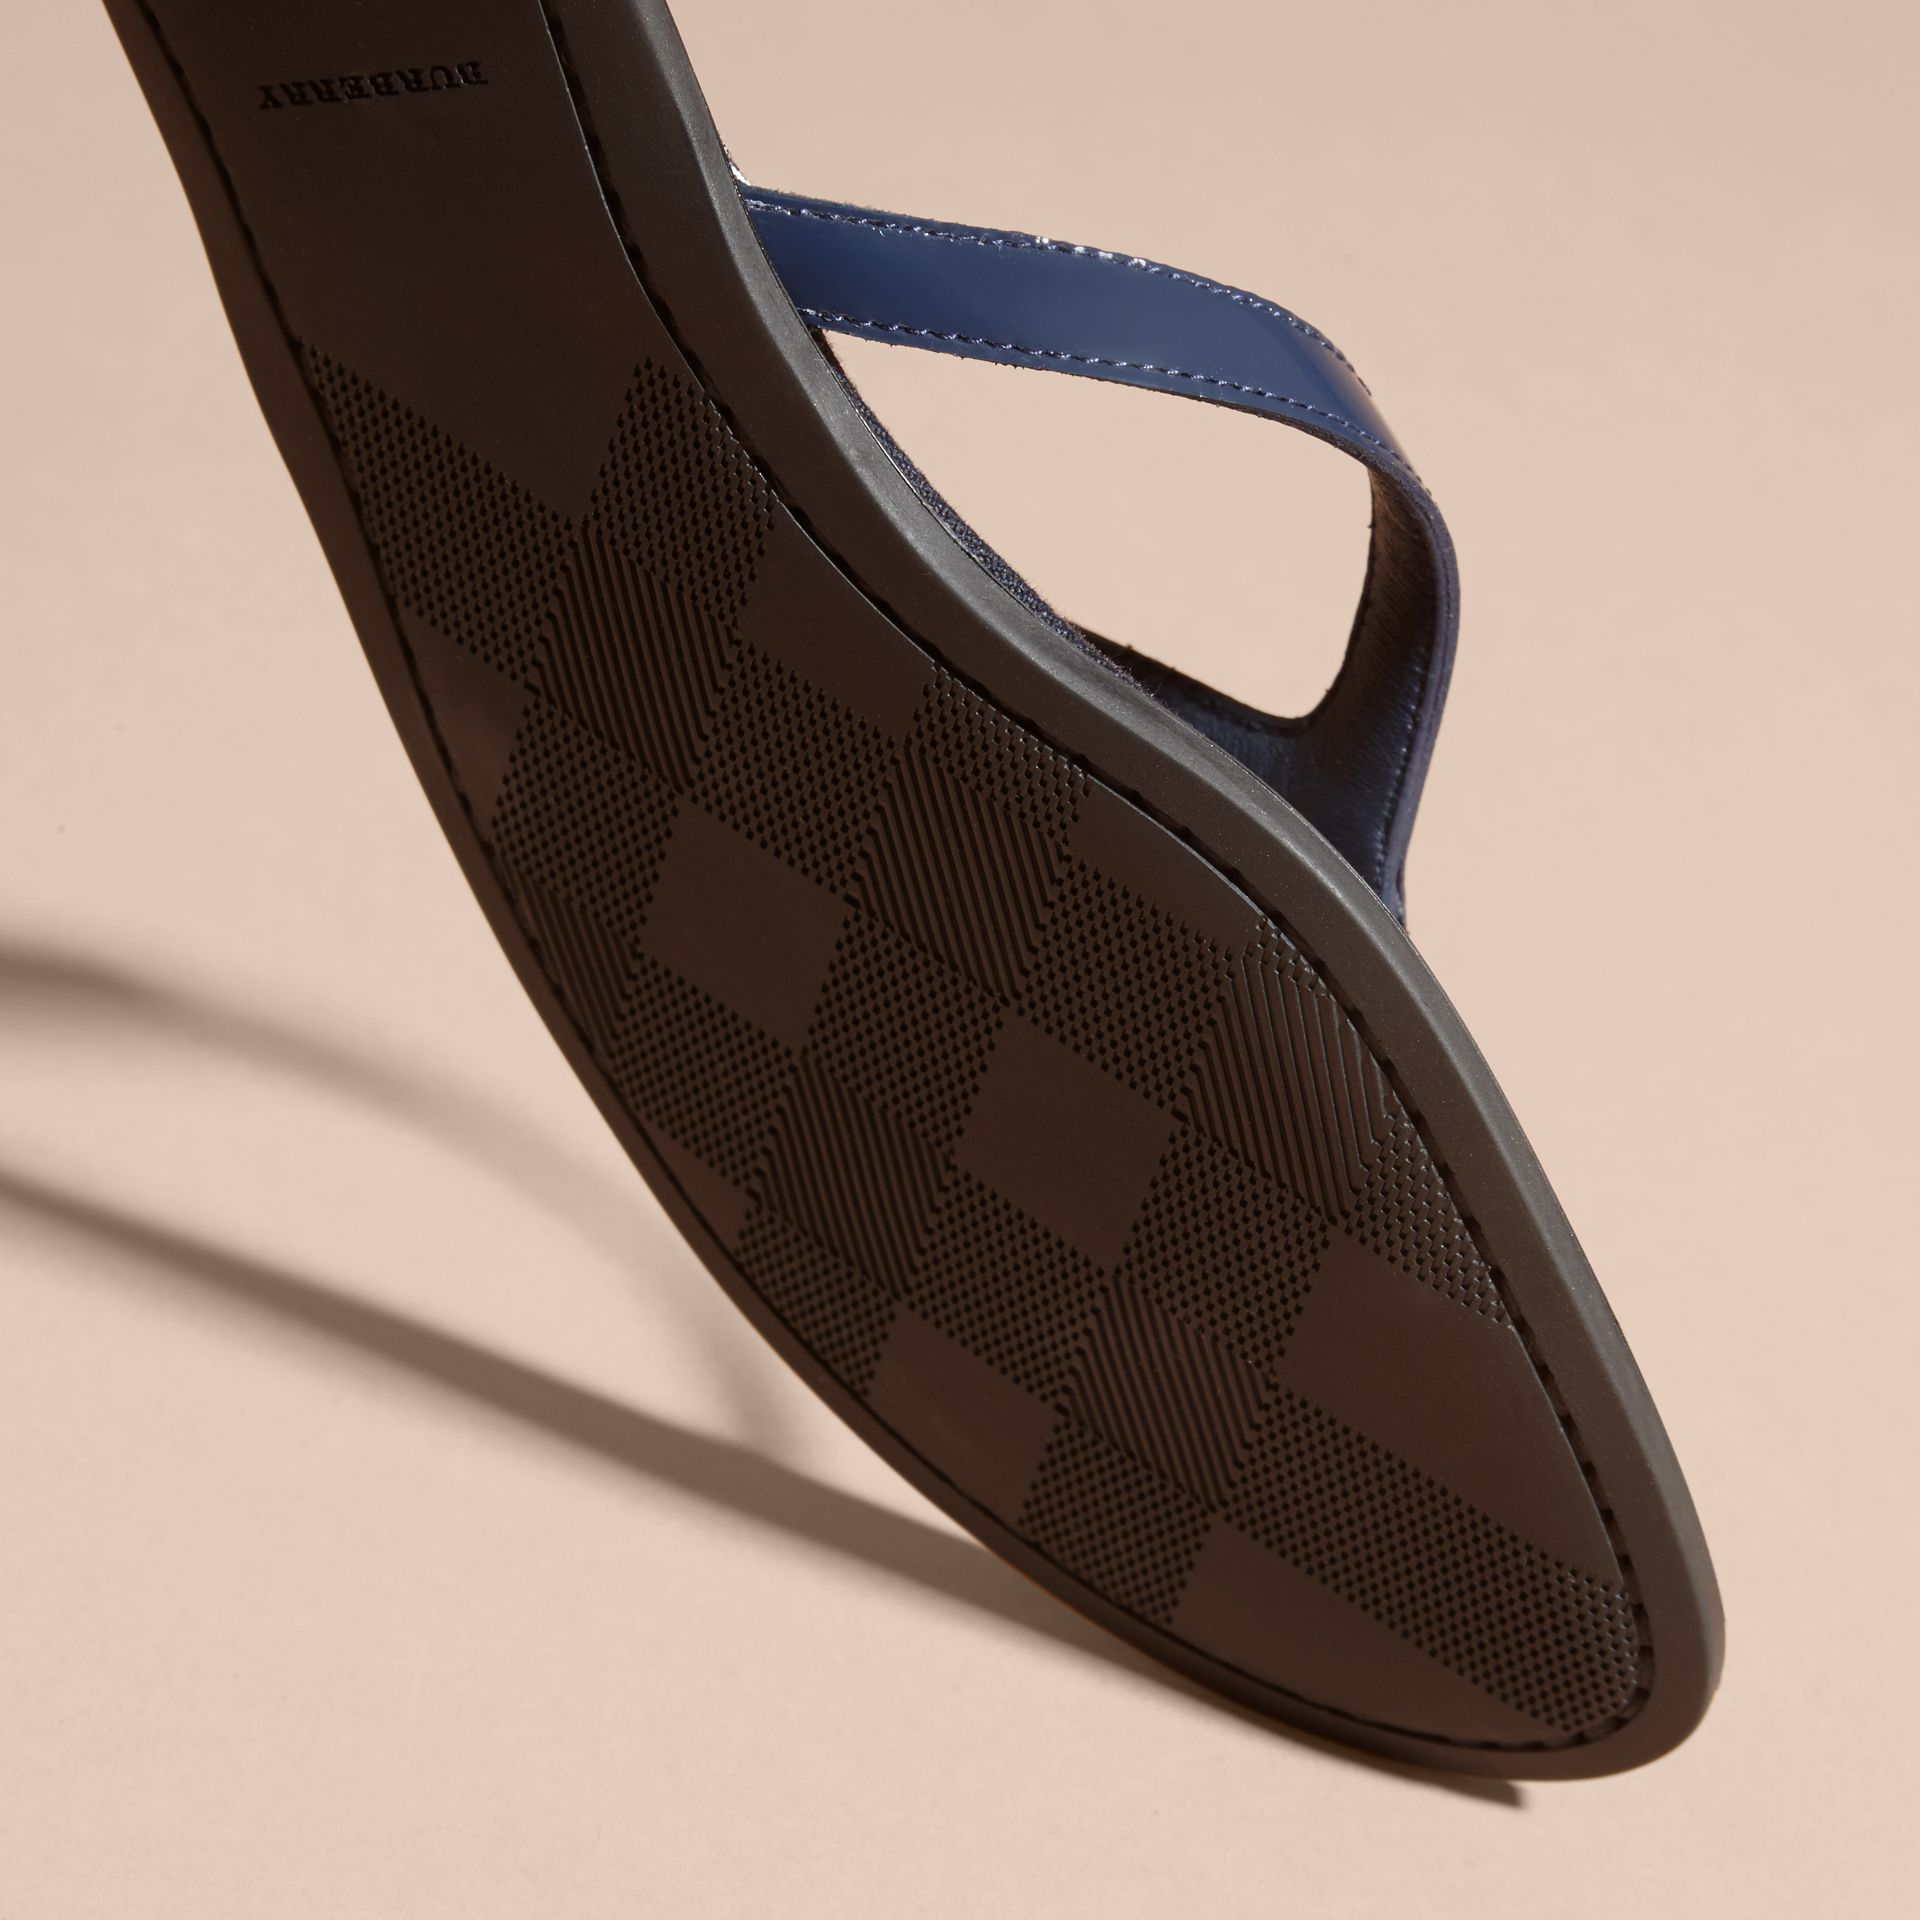 House Check and Patent Leather Sandals in Indigo Blue - Women | Burberry - gallery image 5